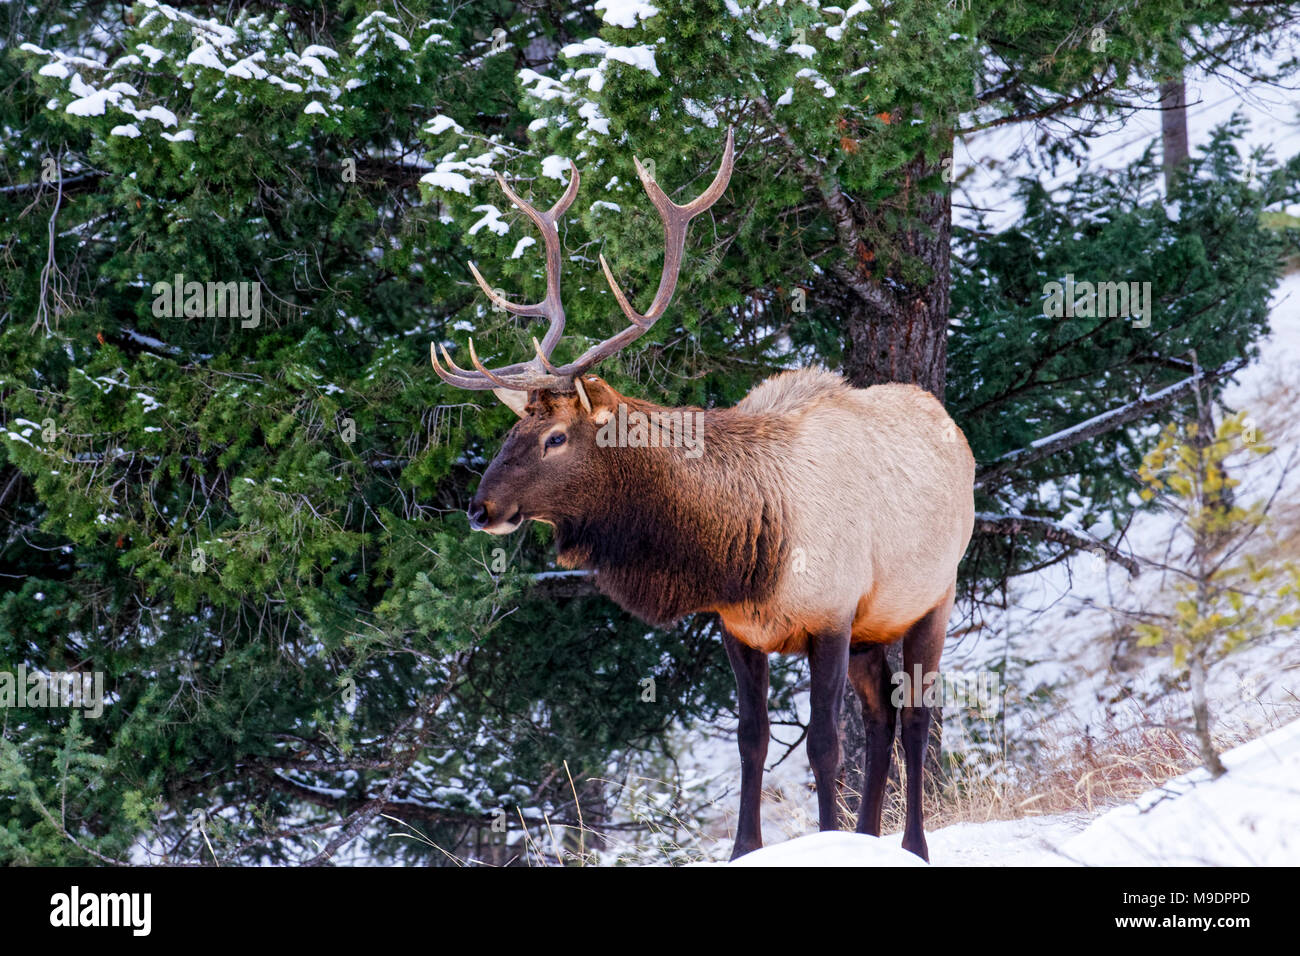 43,113.08809 majestic 5x5 bull Elk with his head held high, standing in a conifer forest, winter snow - Stock Image